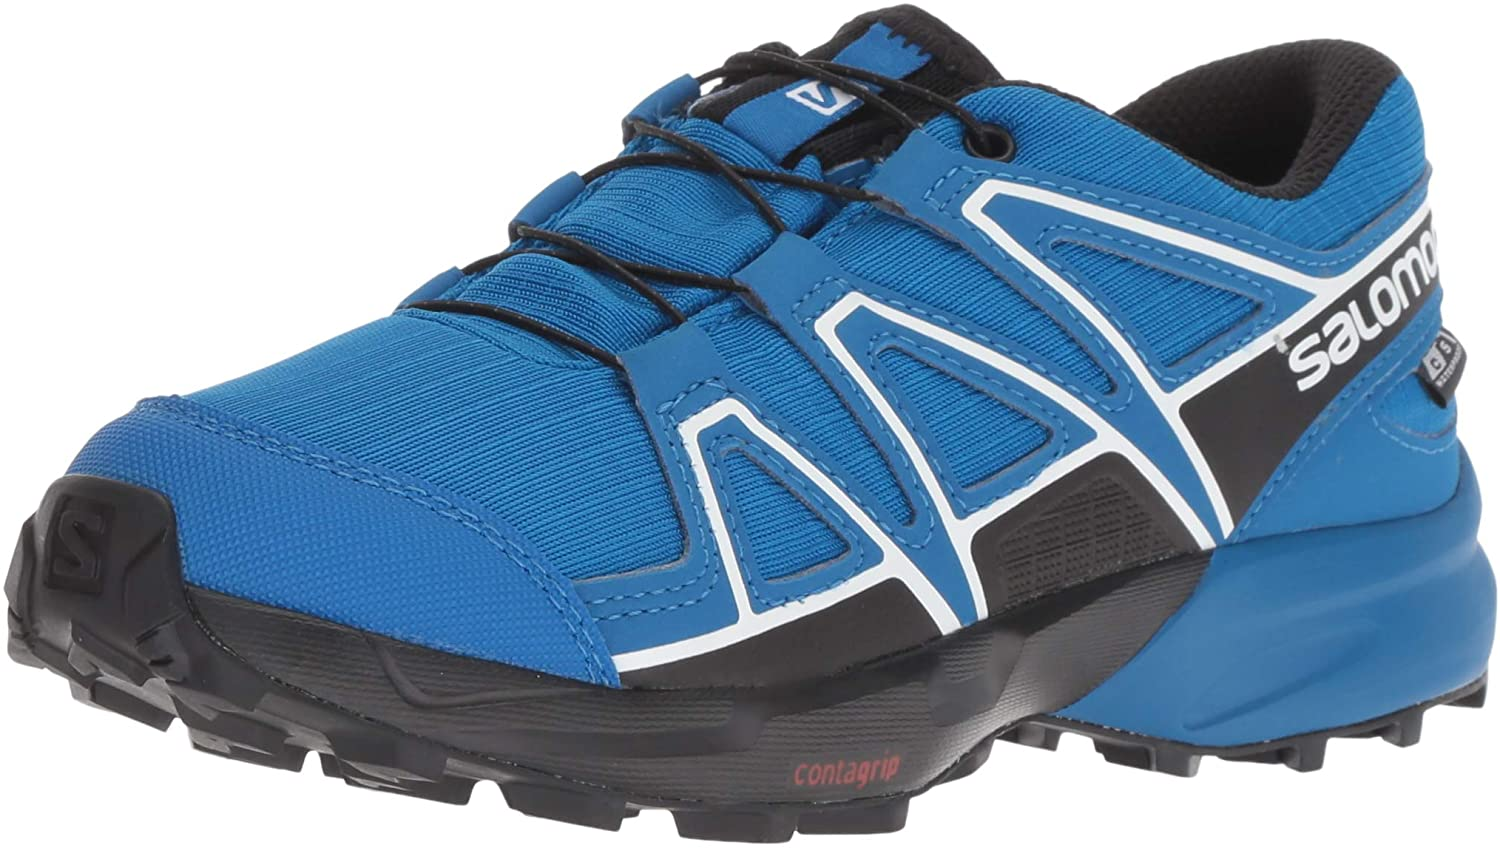 SALOMON Unisex Kids' Speedcross CSWP J Trail Running shoes